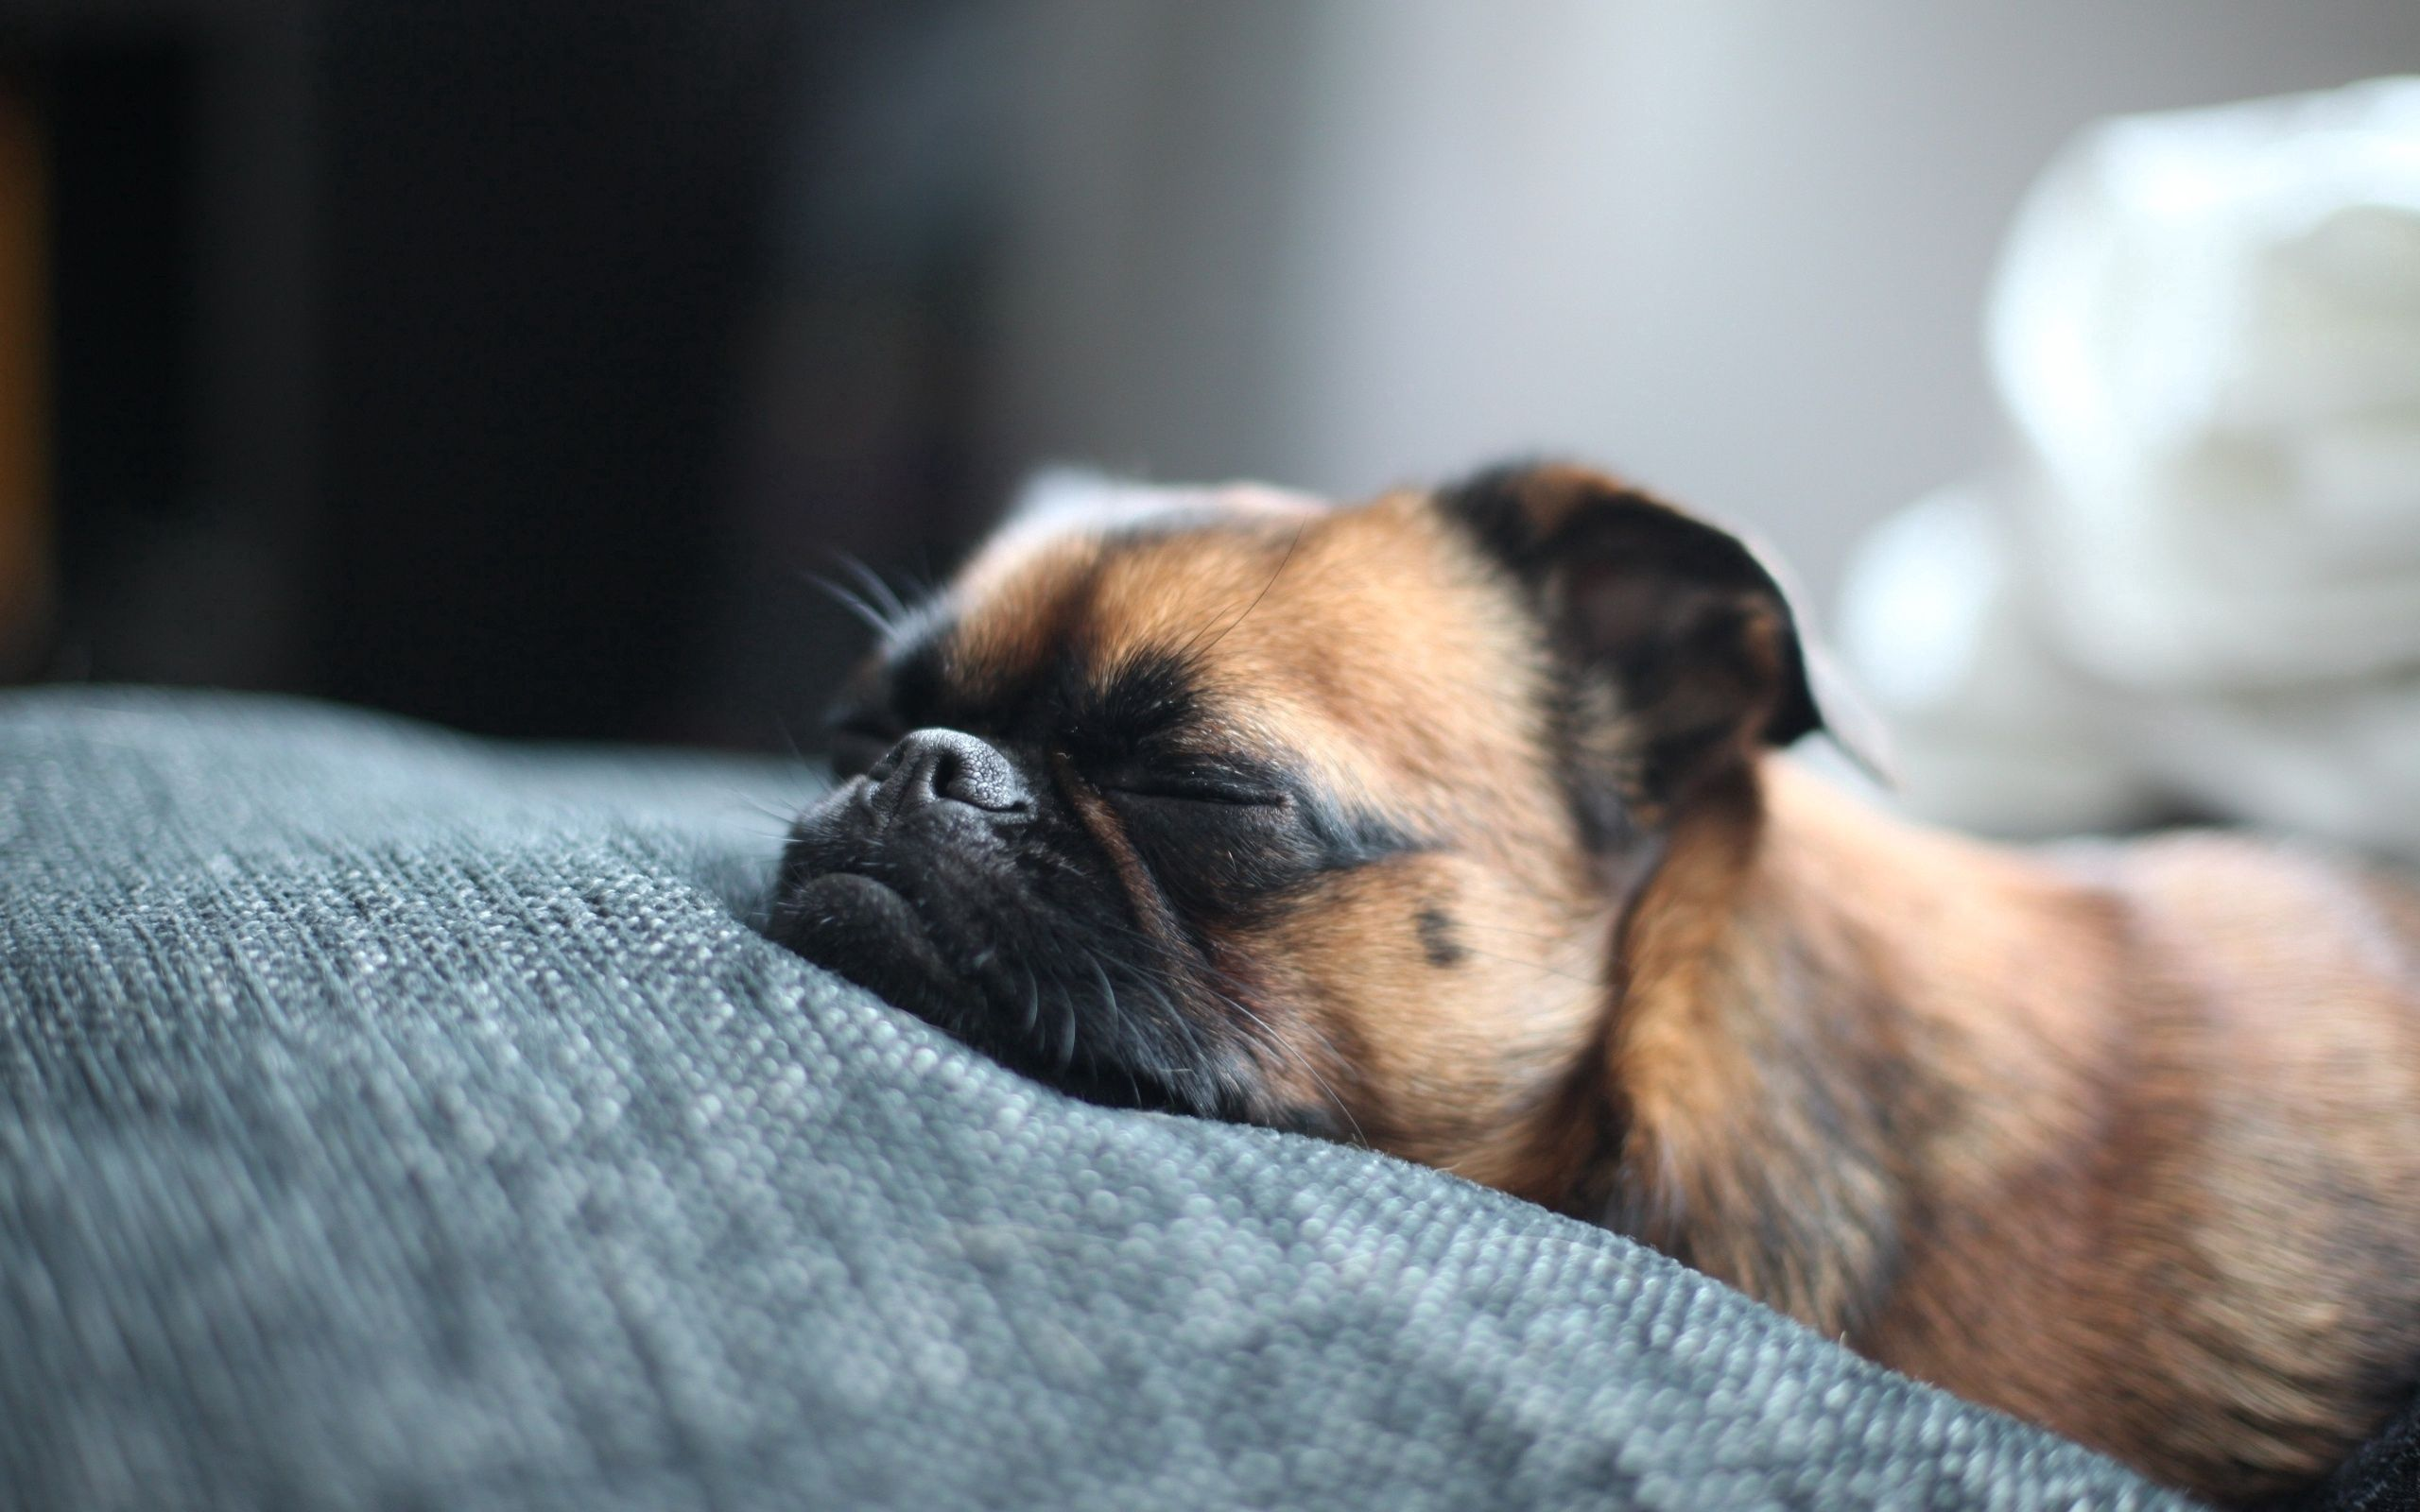 127056 download wallpaper Animals, Dog, Muzzle, Spotted, Spotty, Sleep, Dream screensavers and pictures for free